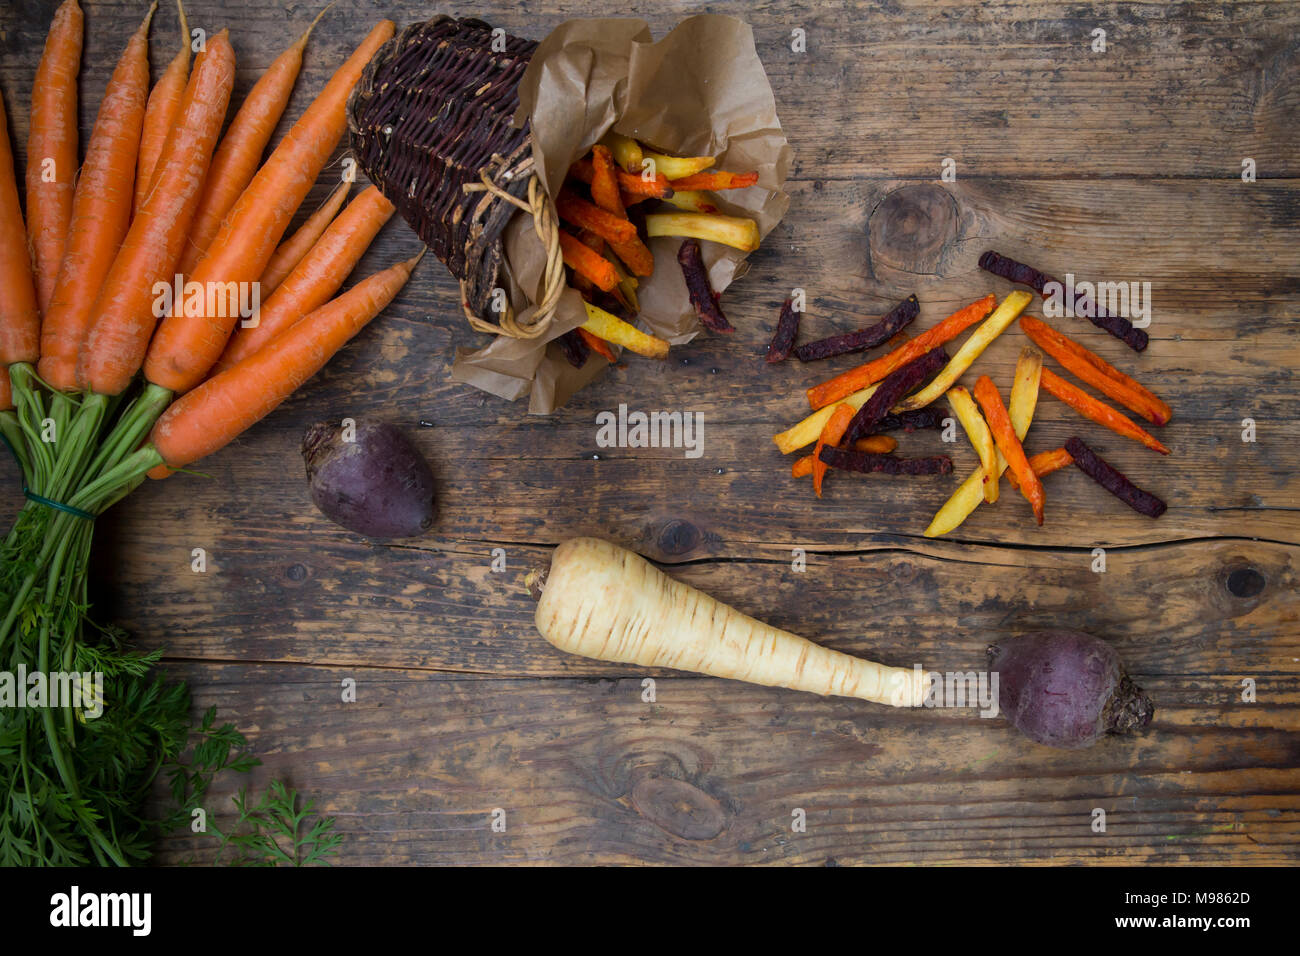 Organic beetroot, carrot and parsnip fries - Stock Image